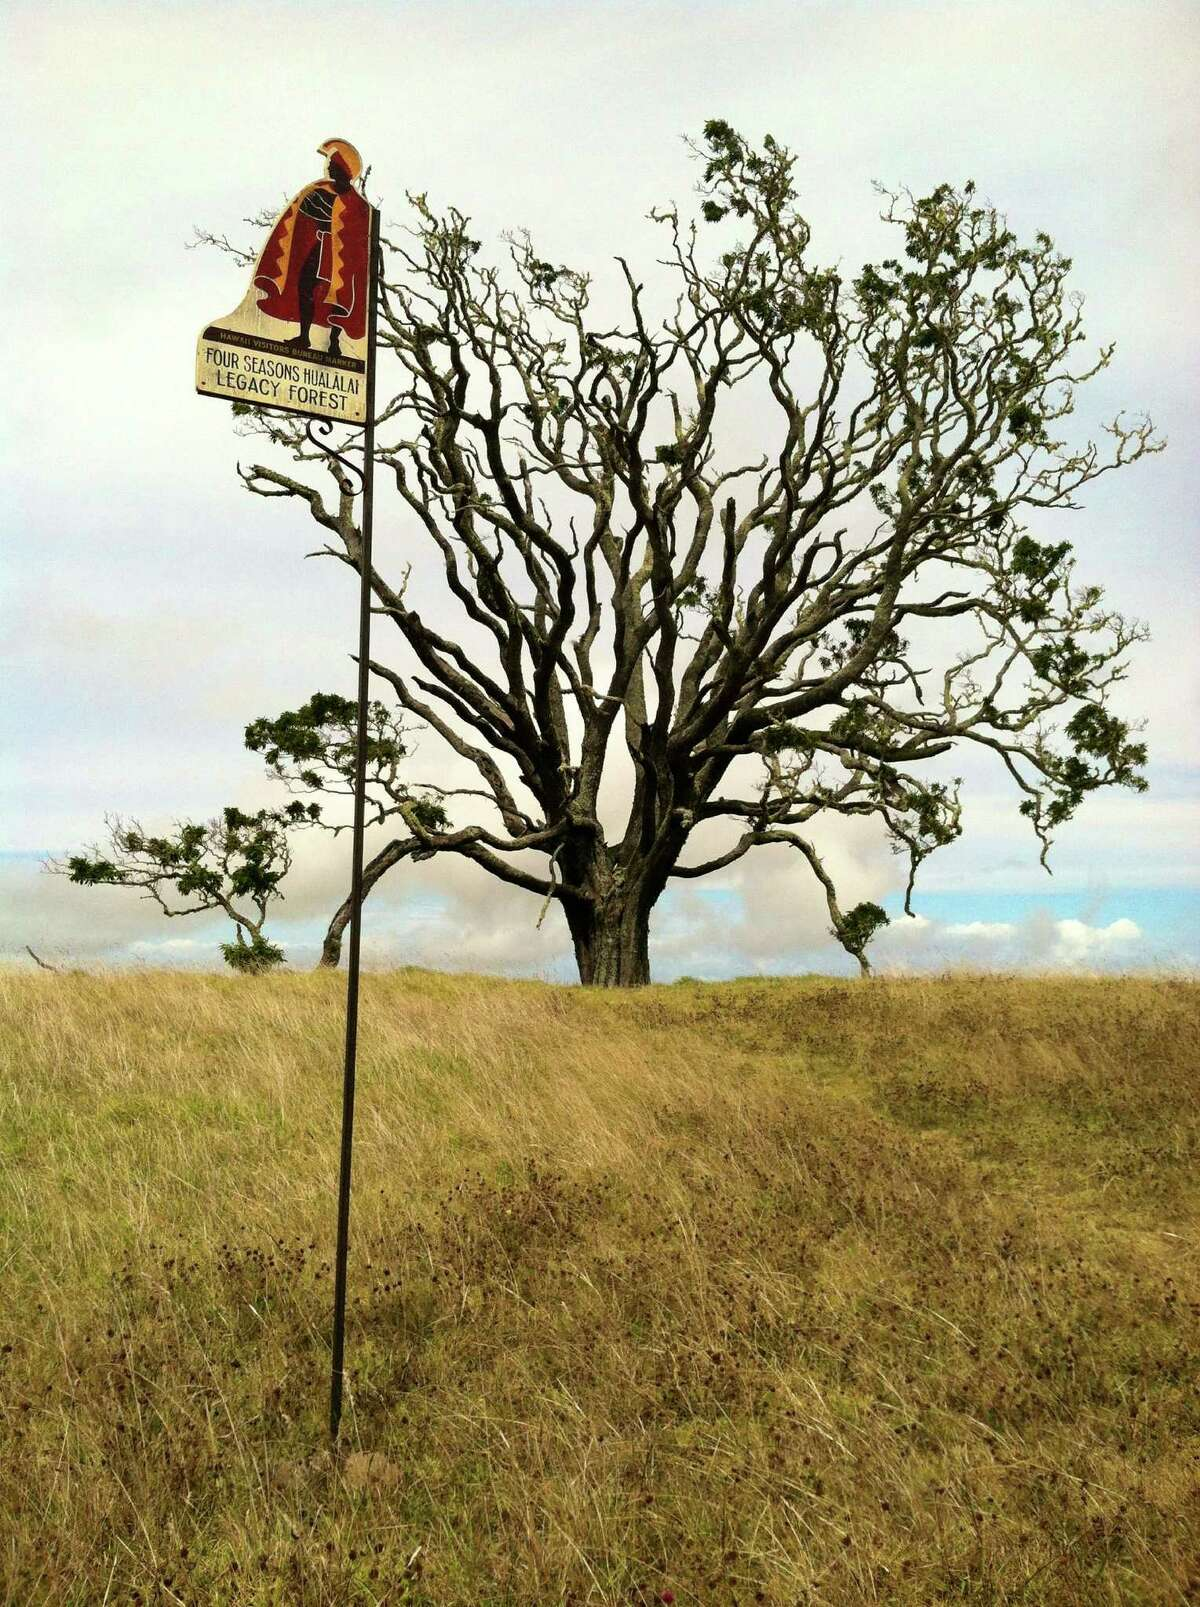 A Kamehameha sign stands by a koa tree, planted as part of the Hawaiian Legacy Reforestation Initiative.